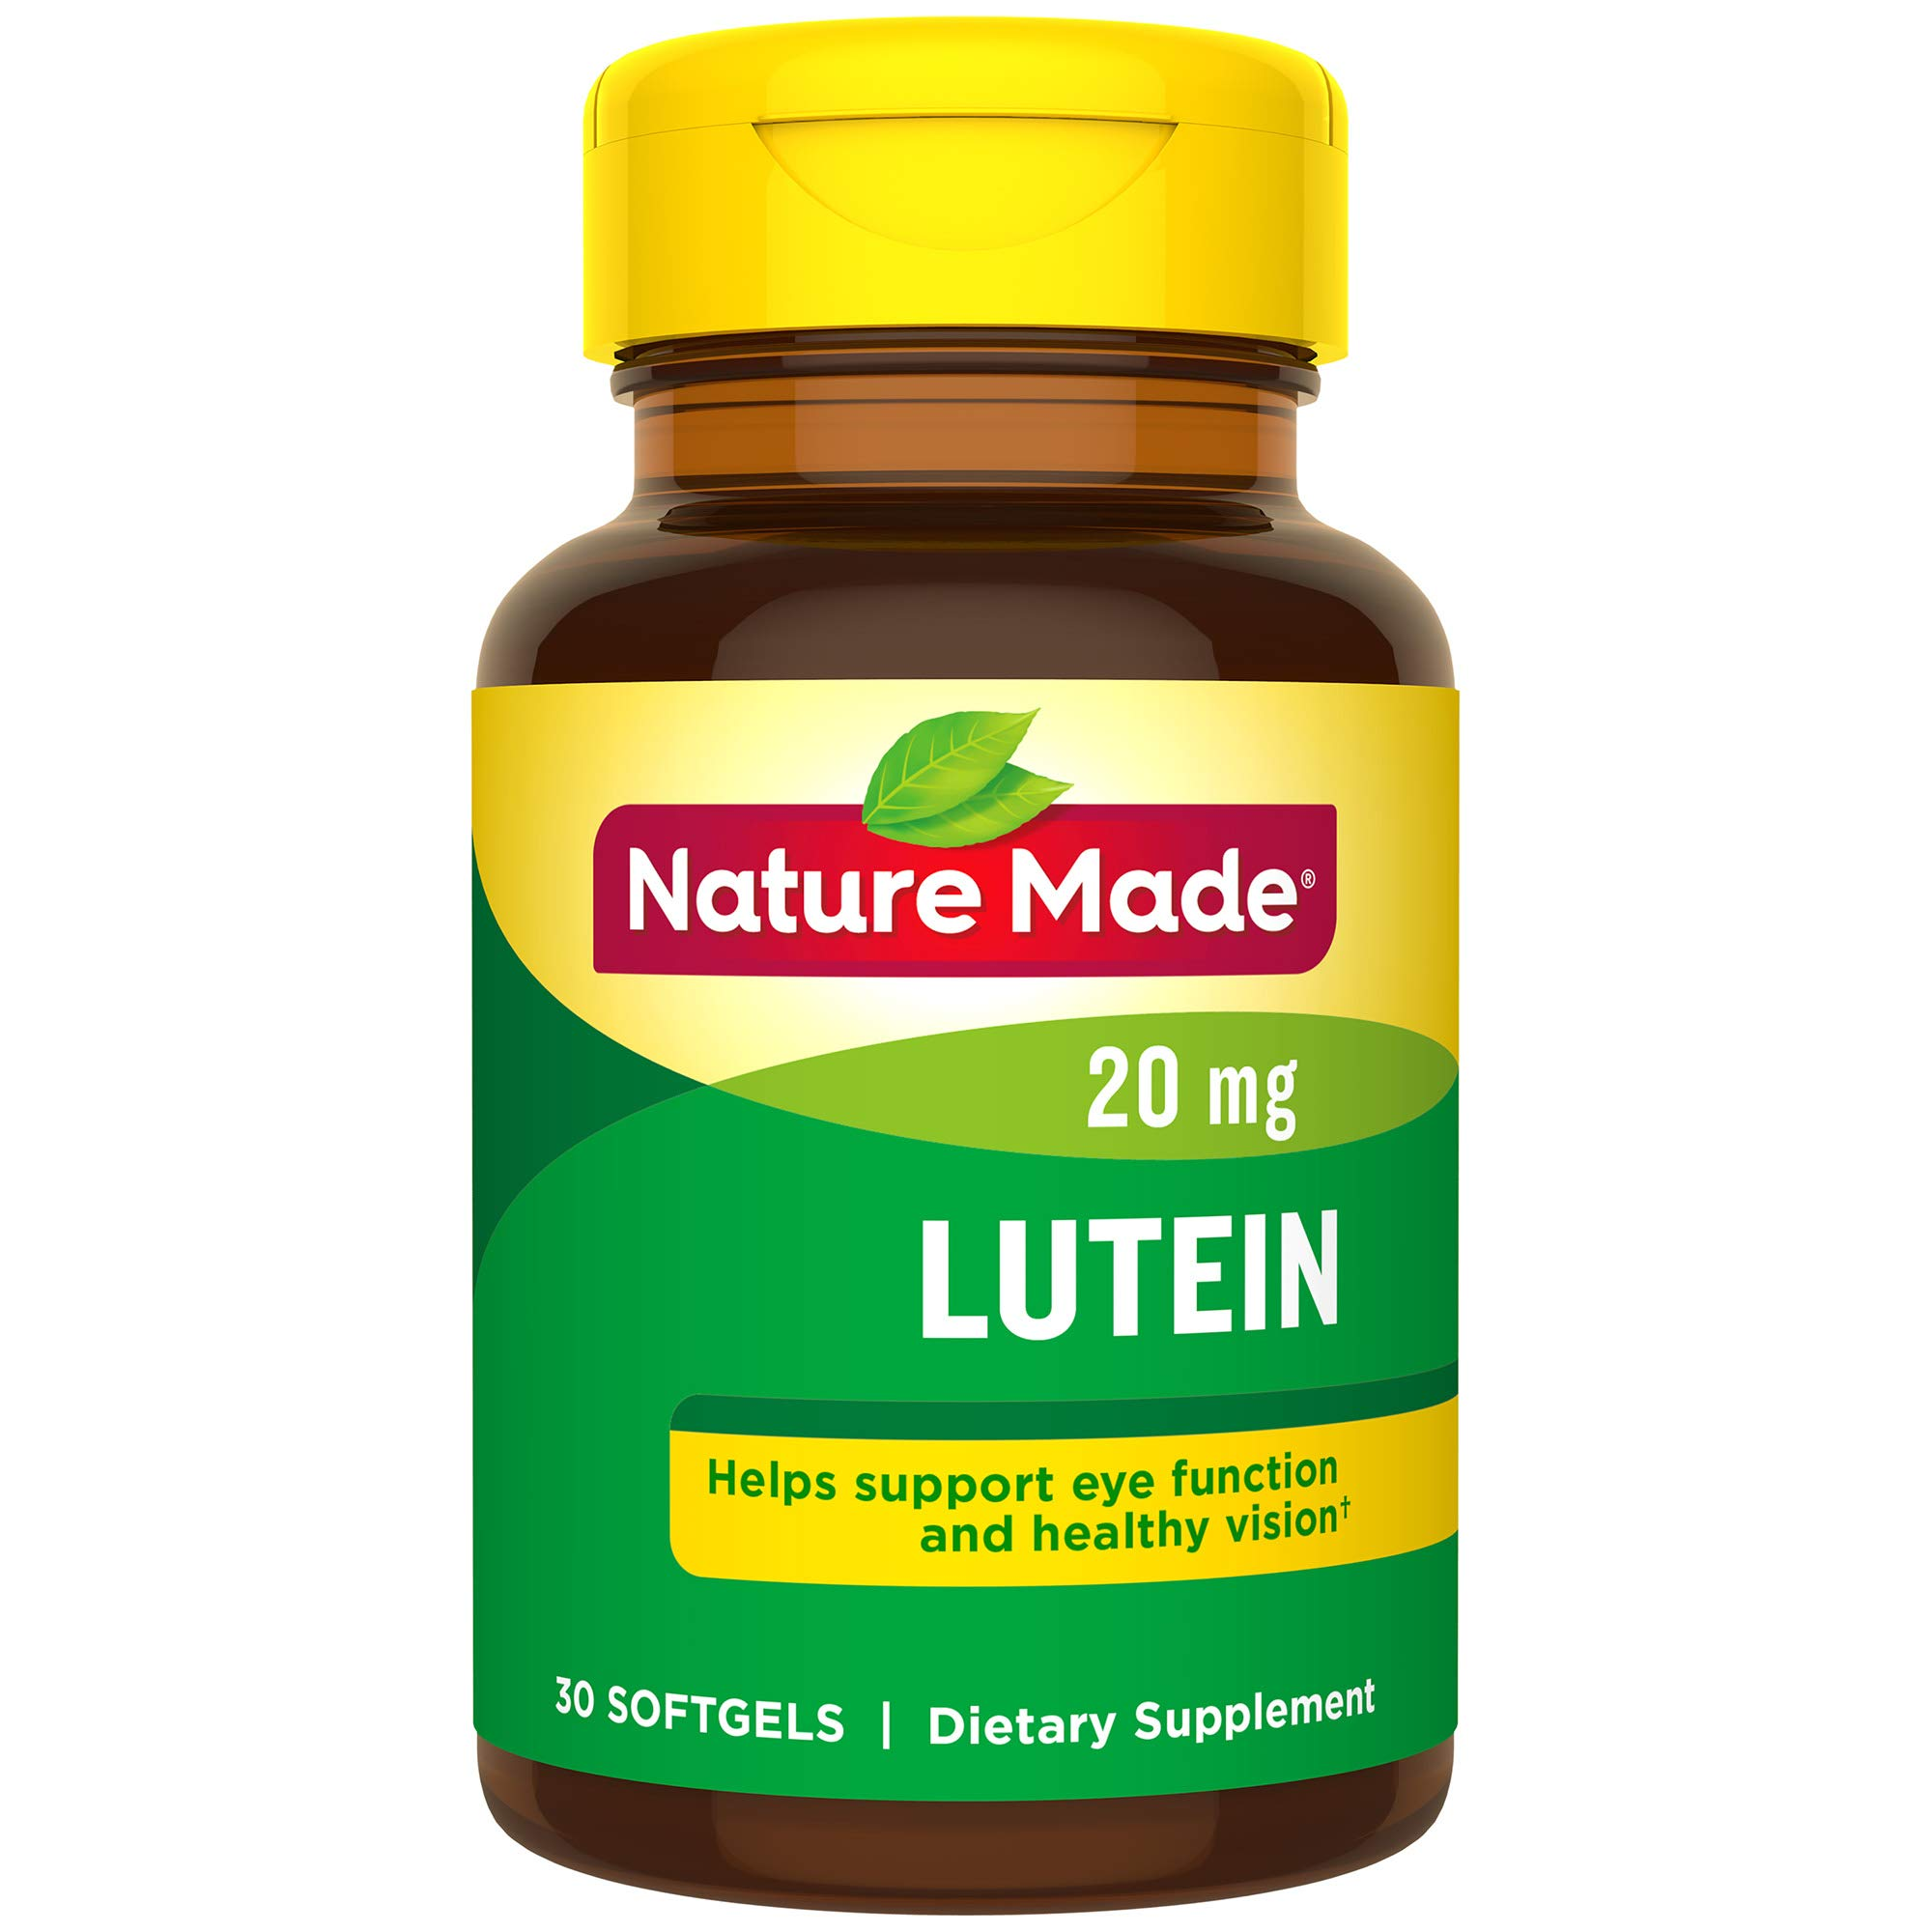 Nature Made Extra Strength Lutein 20 mg Softgels ( Pack Of 3 ) by Nature Made